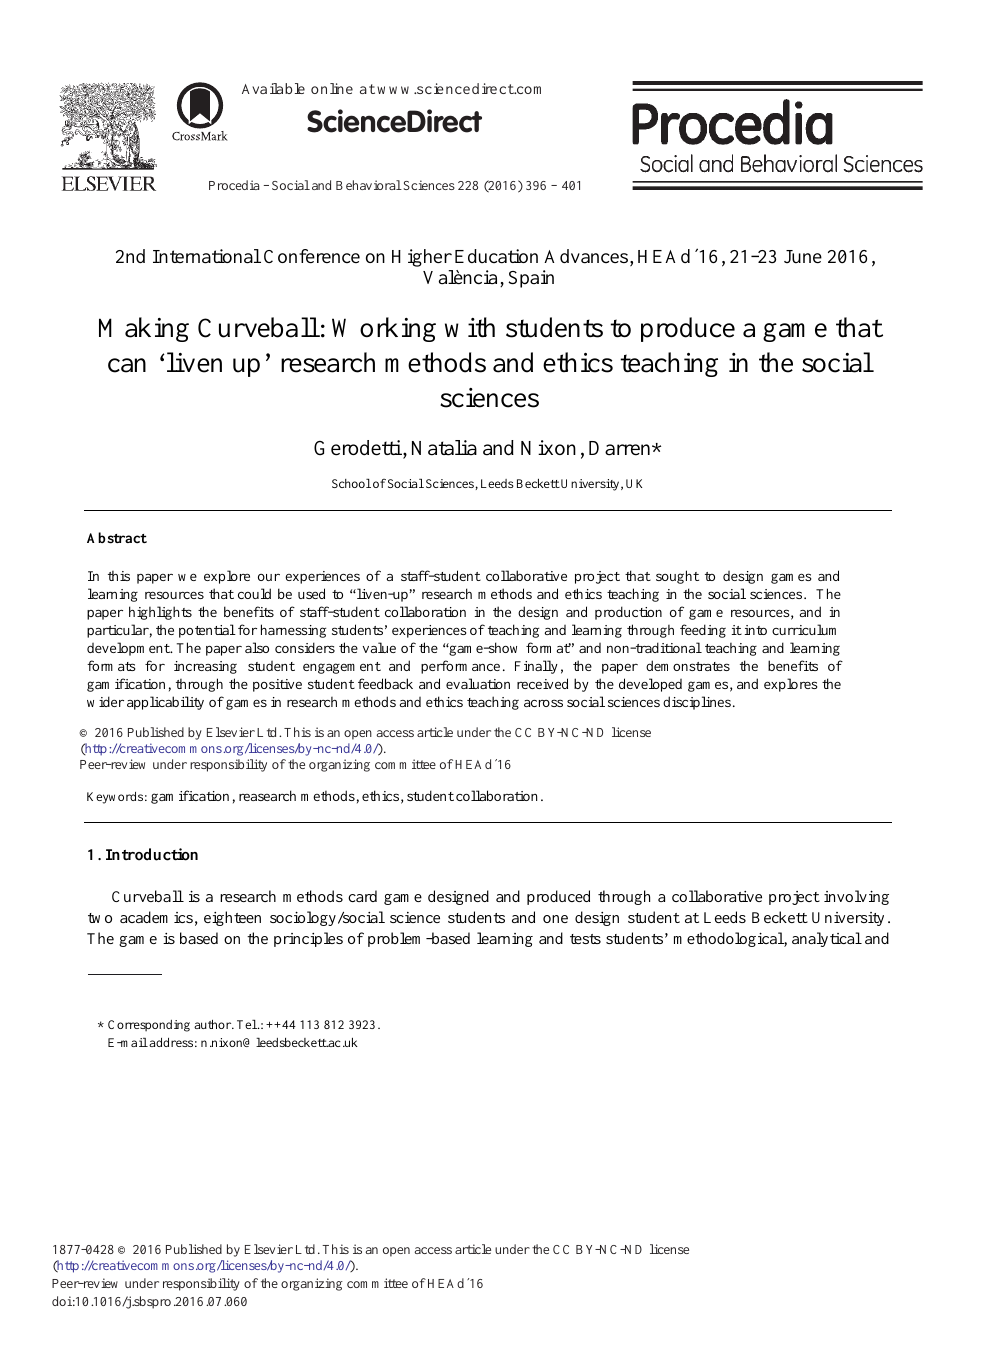 Making Curveball Working With Students To Produce A Game That Can Liven Up Research Methods And Ethics Teaching In The Social Sciences Topic Of Research Paper In Educational Sciences Download Scholarly